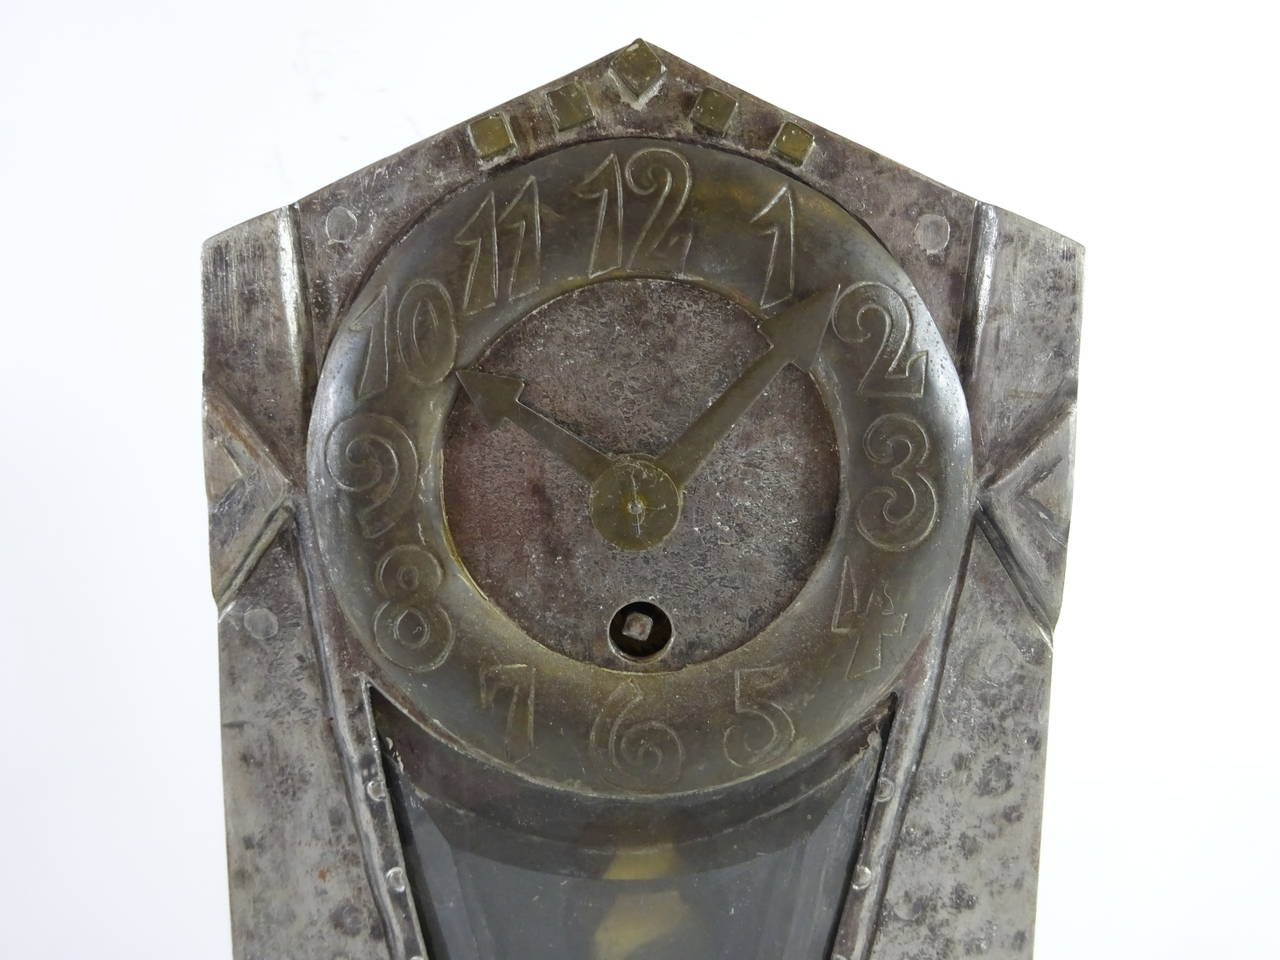 Ludwig Hohlwein iron clock.  Produced by Josef Zimmerman & Co, Munich, circa 1905. Hammered and riveted metal.